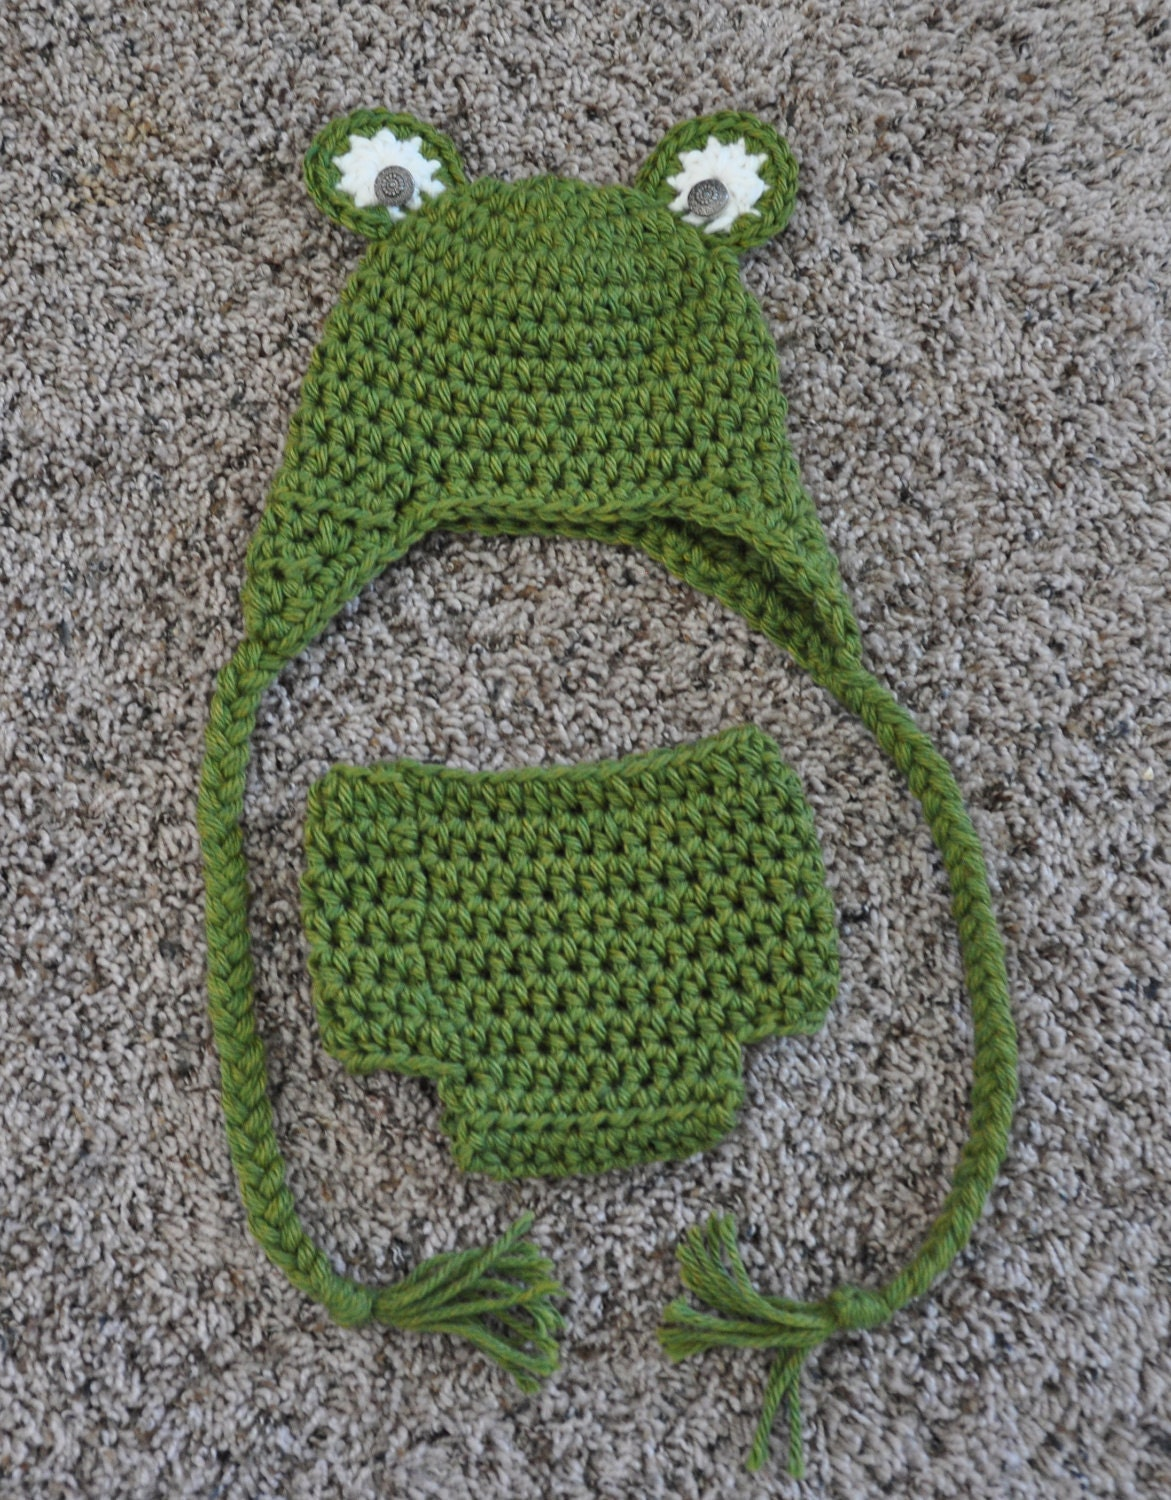 Knitting Pattern For Frog Hat : Crochet Toad Lly Cute Frog Earflap Hat LONG HAIRSTYLES